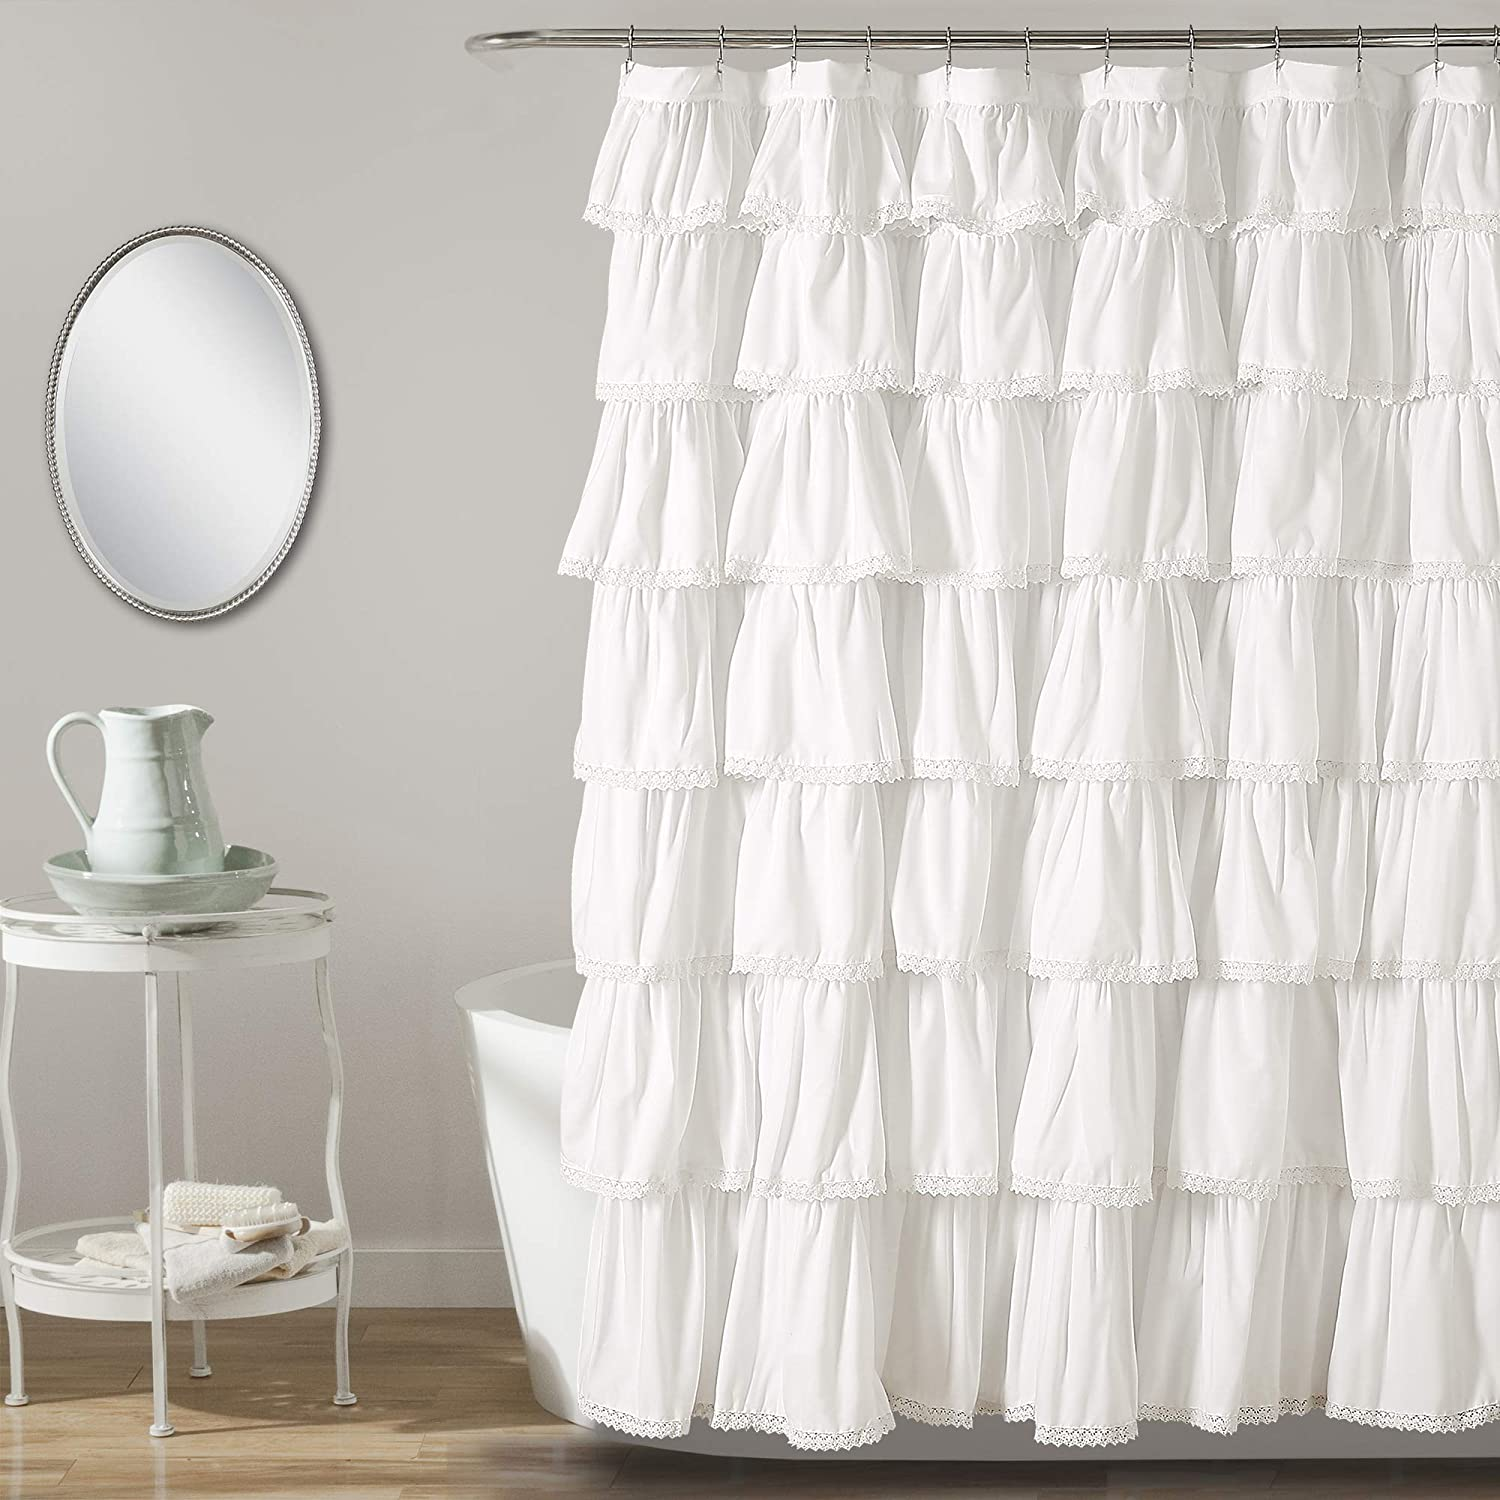 "Lush Decor, White Lace Ruffle Shower Curtain, L x 72"" W, 72"" 72"" W"